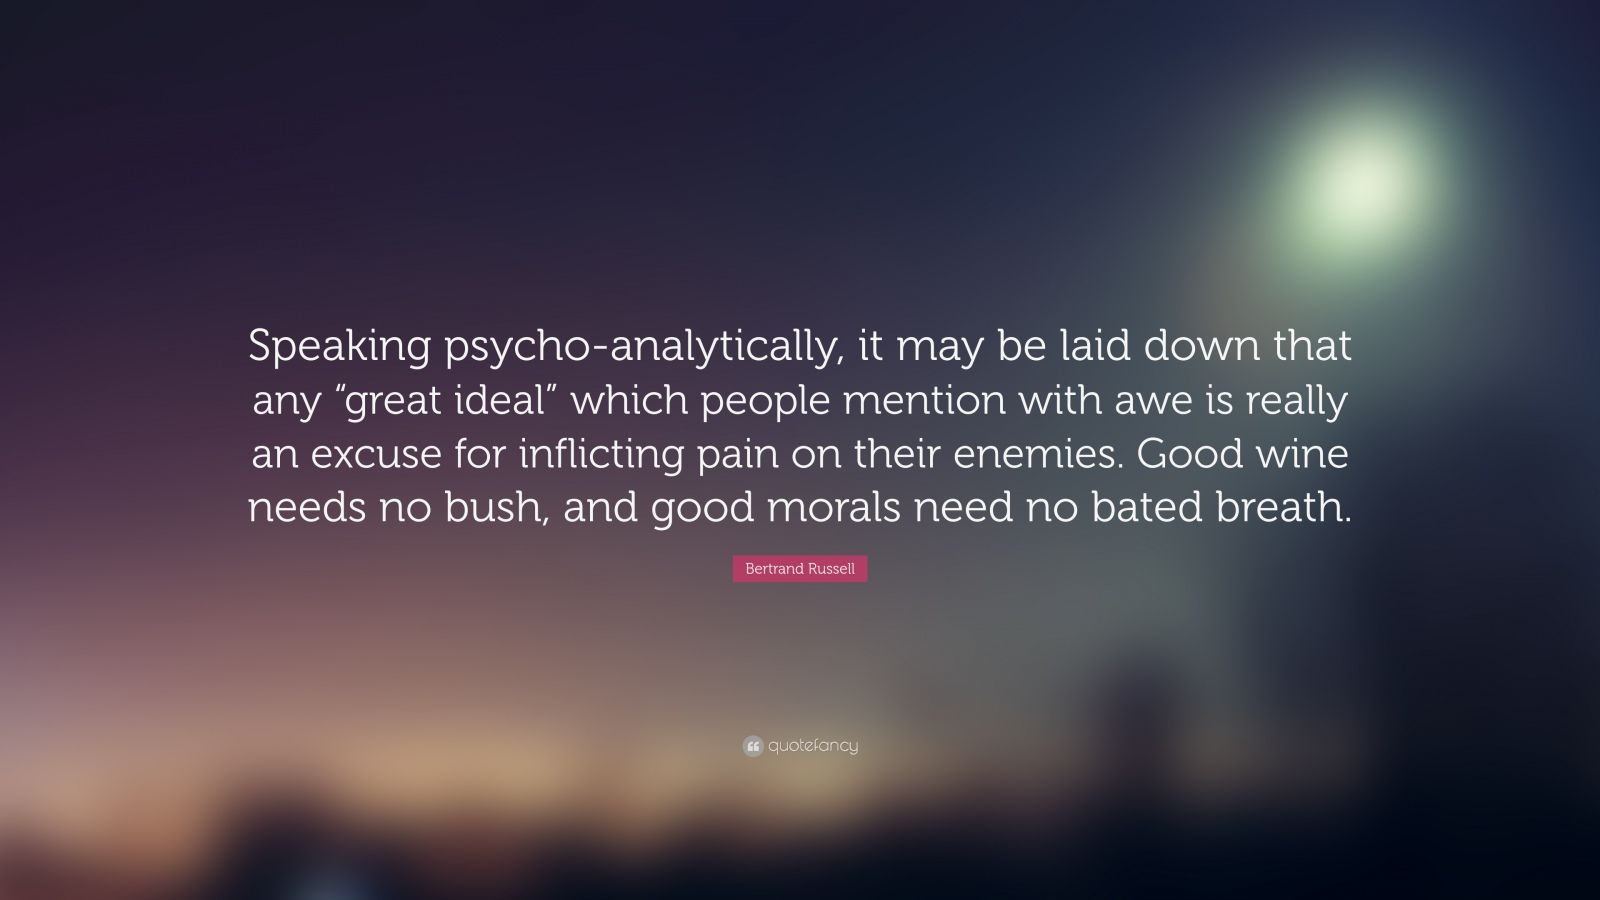 """Bertrand Russell Quote: """"Speaking psycho-analytically, it may be laid down that any """"great ideal"""" which people mention with awe is really an excuse for inflicting pain on their enemies. Good wine needs no bush, and good morals need no bated breath."""""""